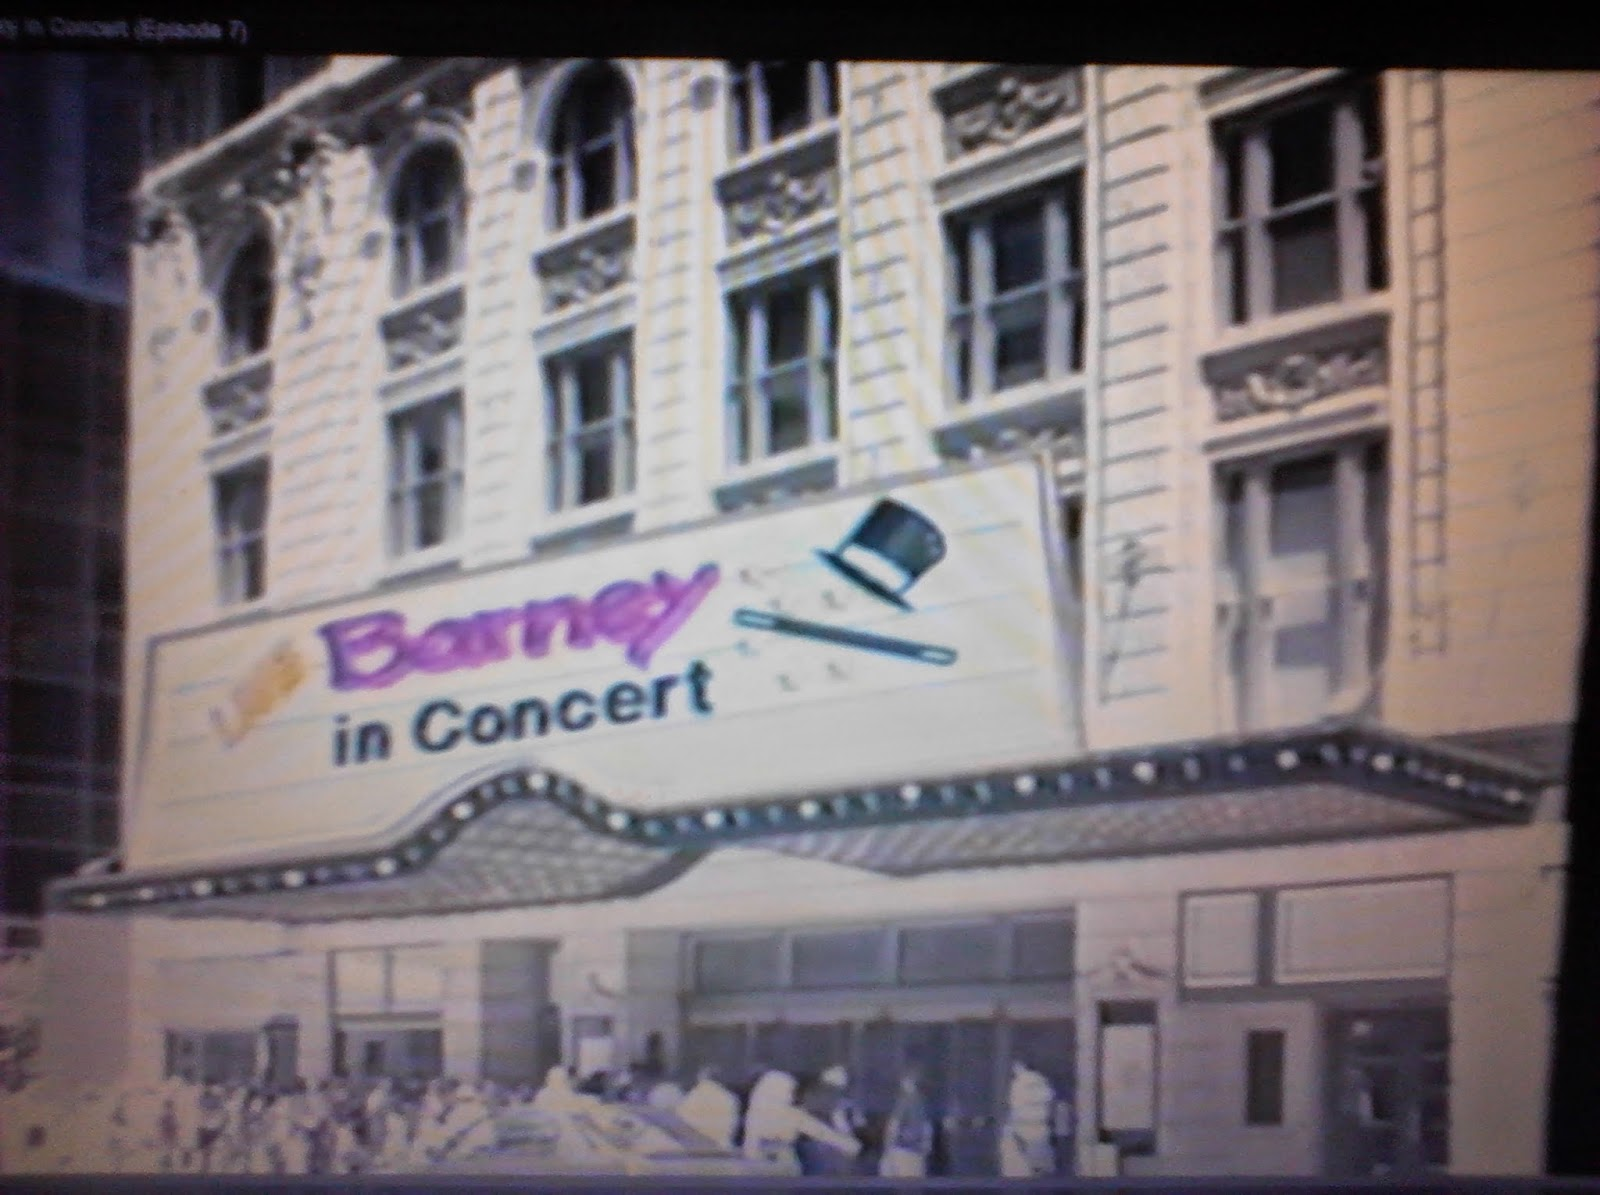 Whatsoever Critic Barney In Concert Video Review - Barney and the back yard gang barney in concert